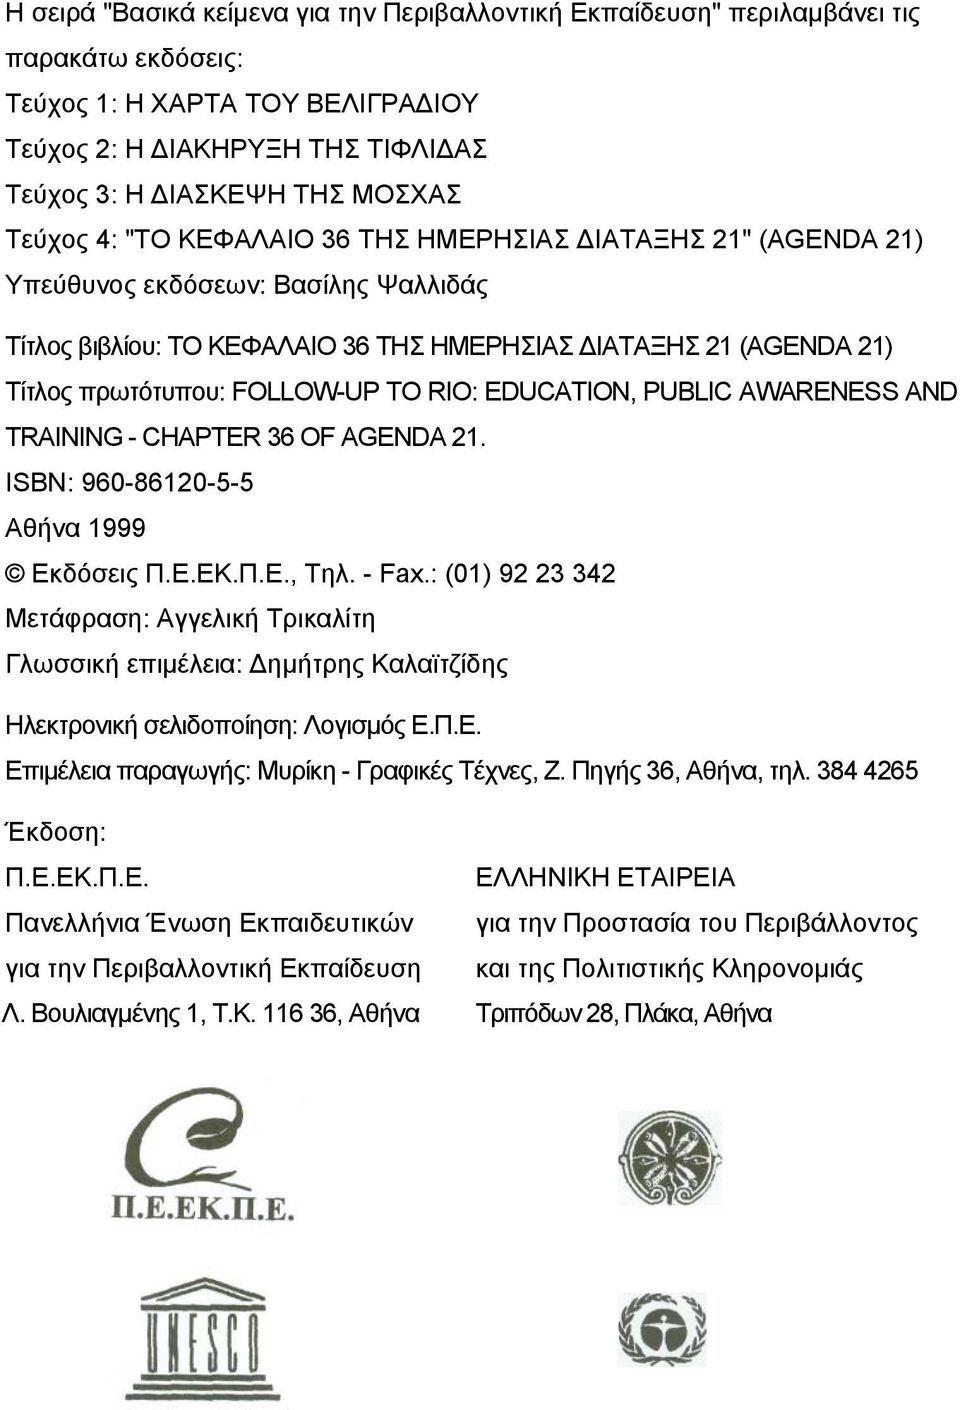 TO RIO: EDUCATION, PUBLIC AWARENESS AND TRAINING - CHAPTER 36 OF AGENDA 21. ISBN: 960-86120-5-5 Αθήνα 1999 Εκδόσεις Π.Ε.ΕΚ.Π.Ε., Τηλ. - Fax.